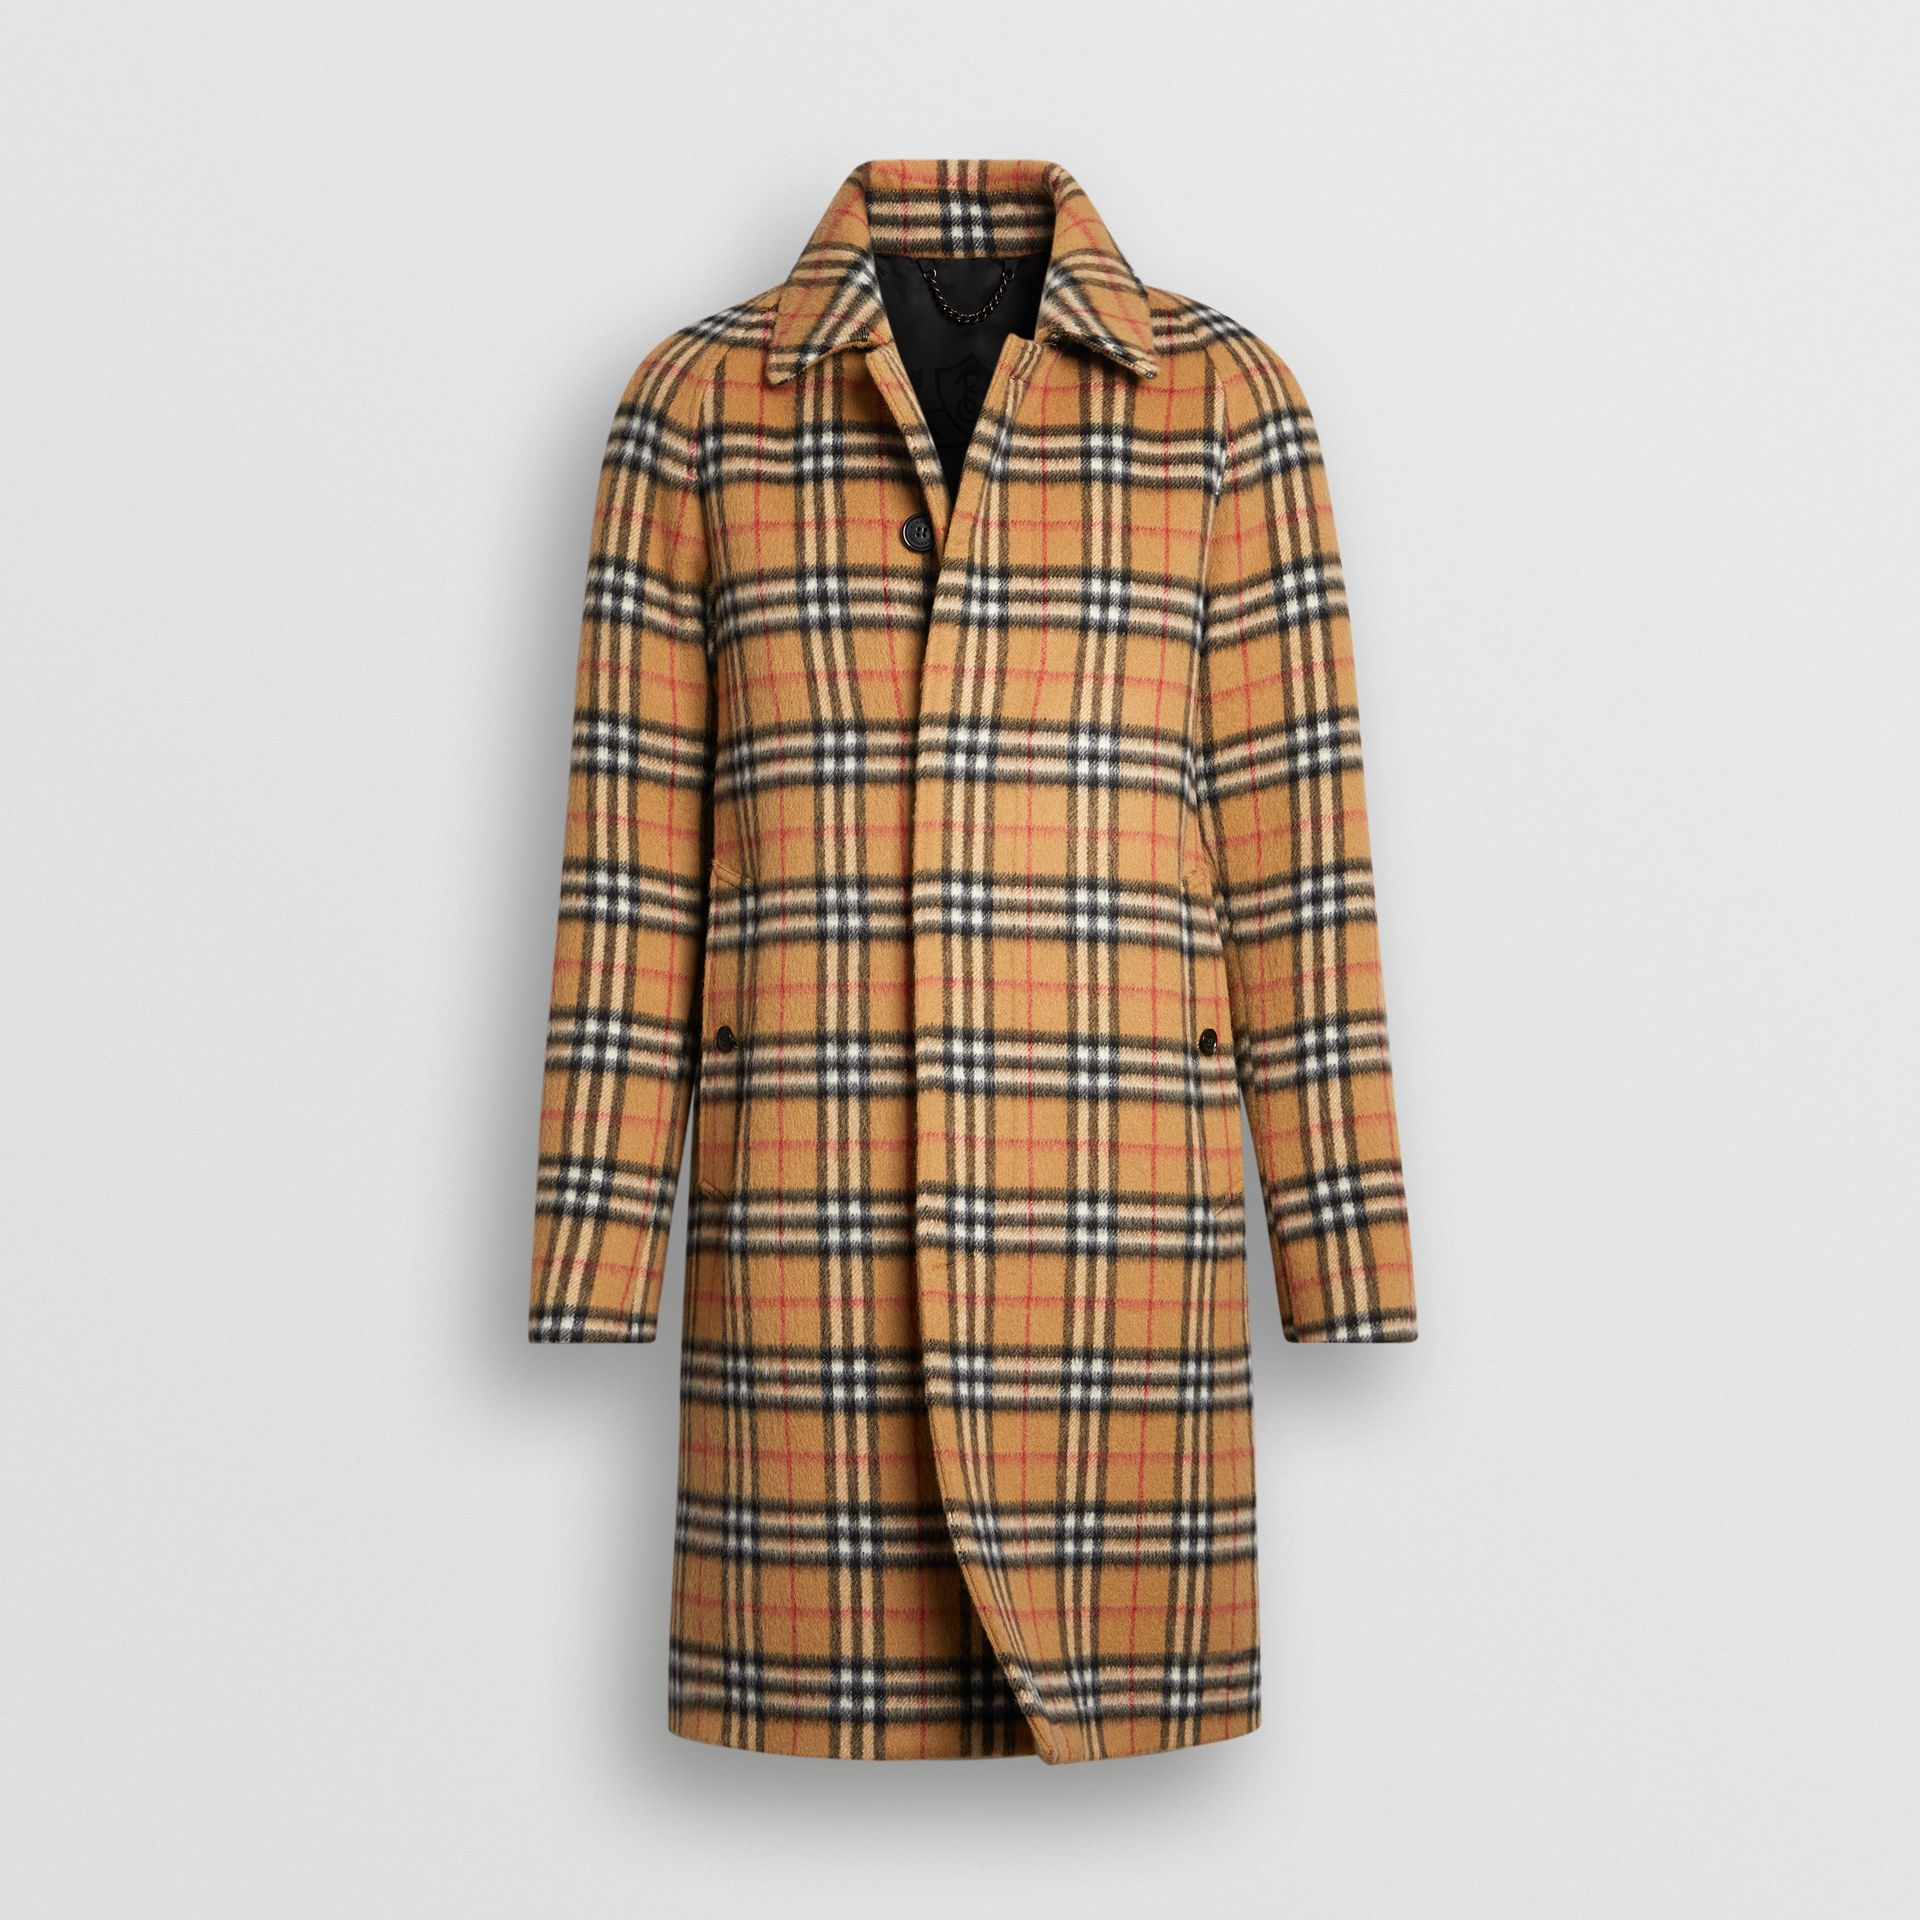 Paletot en alpaga à motif Vintage check (Jaune Antique) - Homme | Burberry Canada - photo de la galerie 3